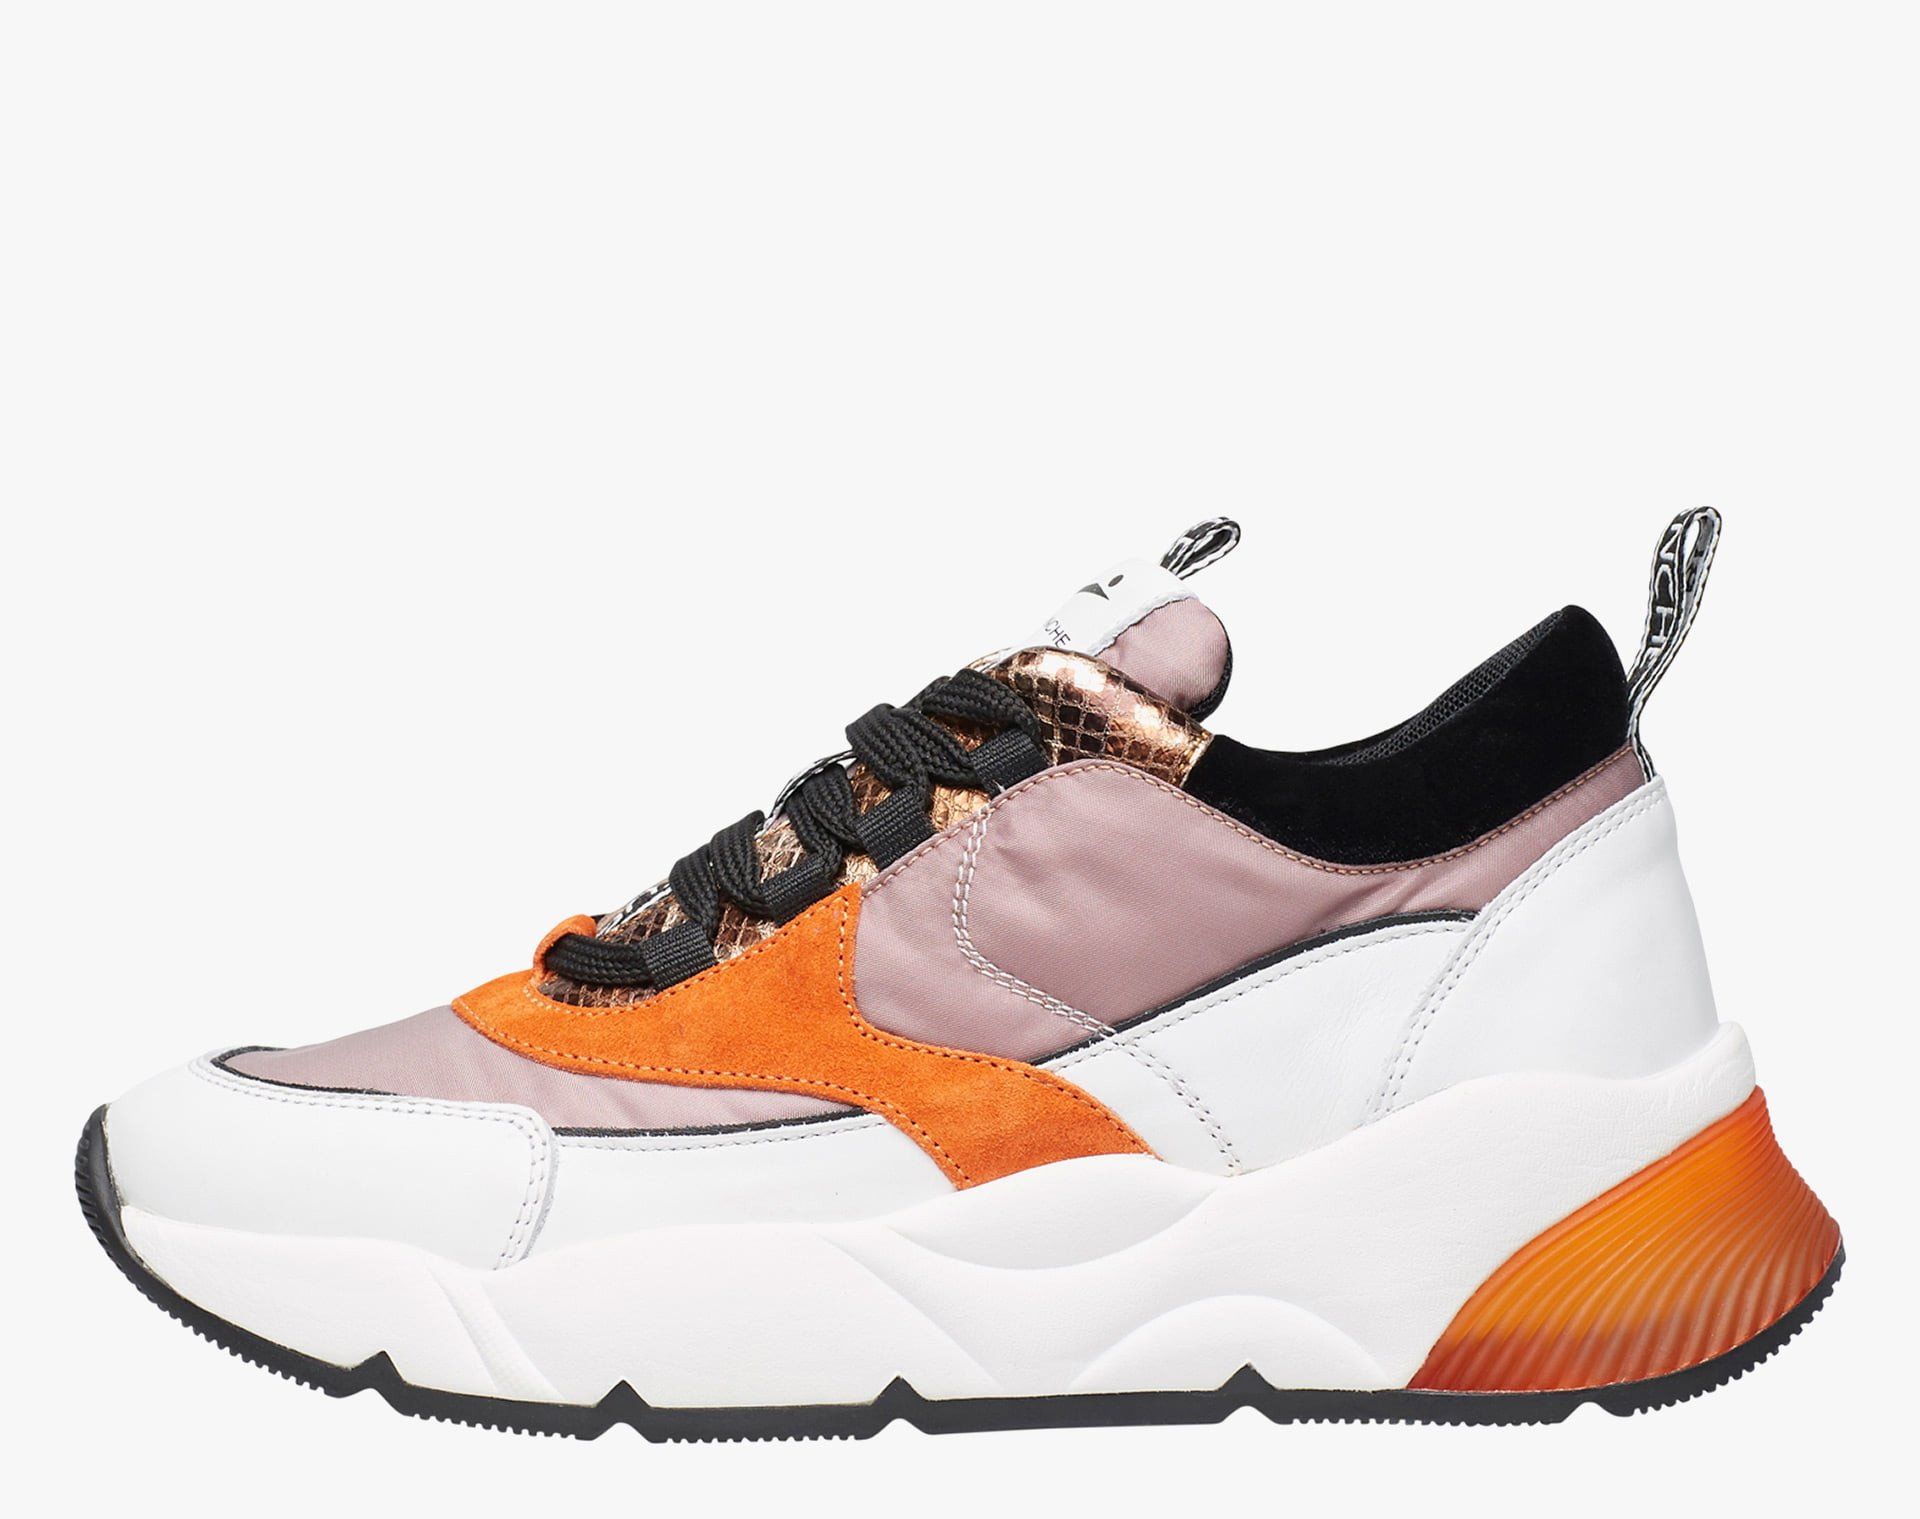 ALEXAS - Sneaker in technical fabric and leather - White/Pink/Black